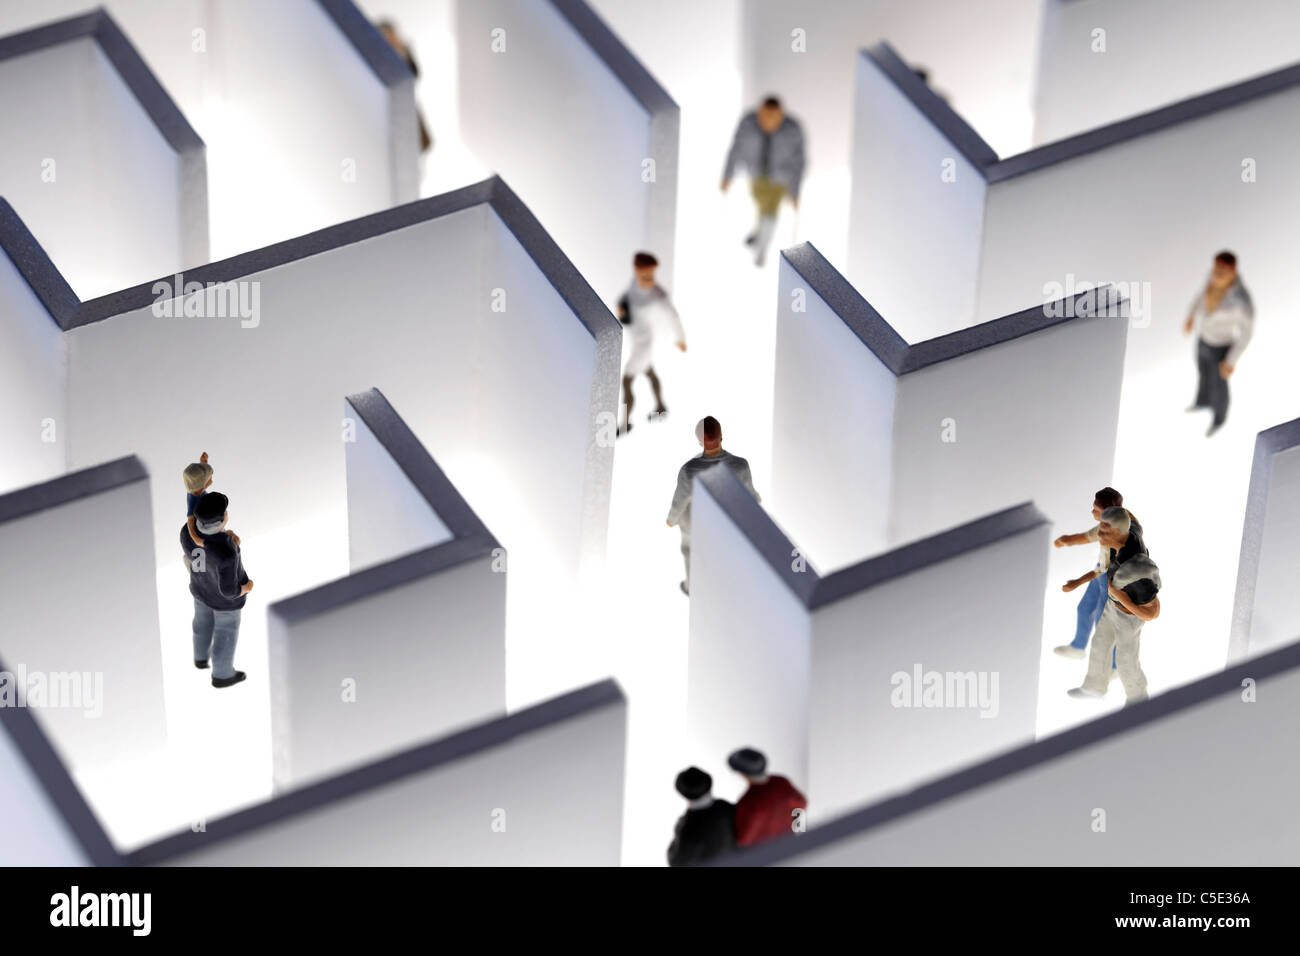 Close-up of human miniatures walking in maze against white background - Stock Image